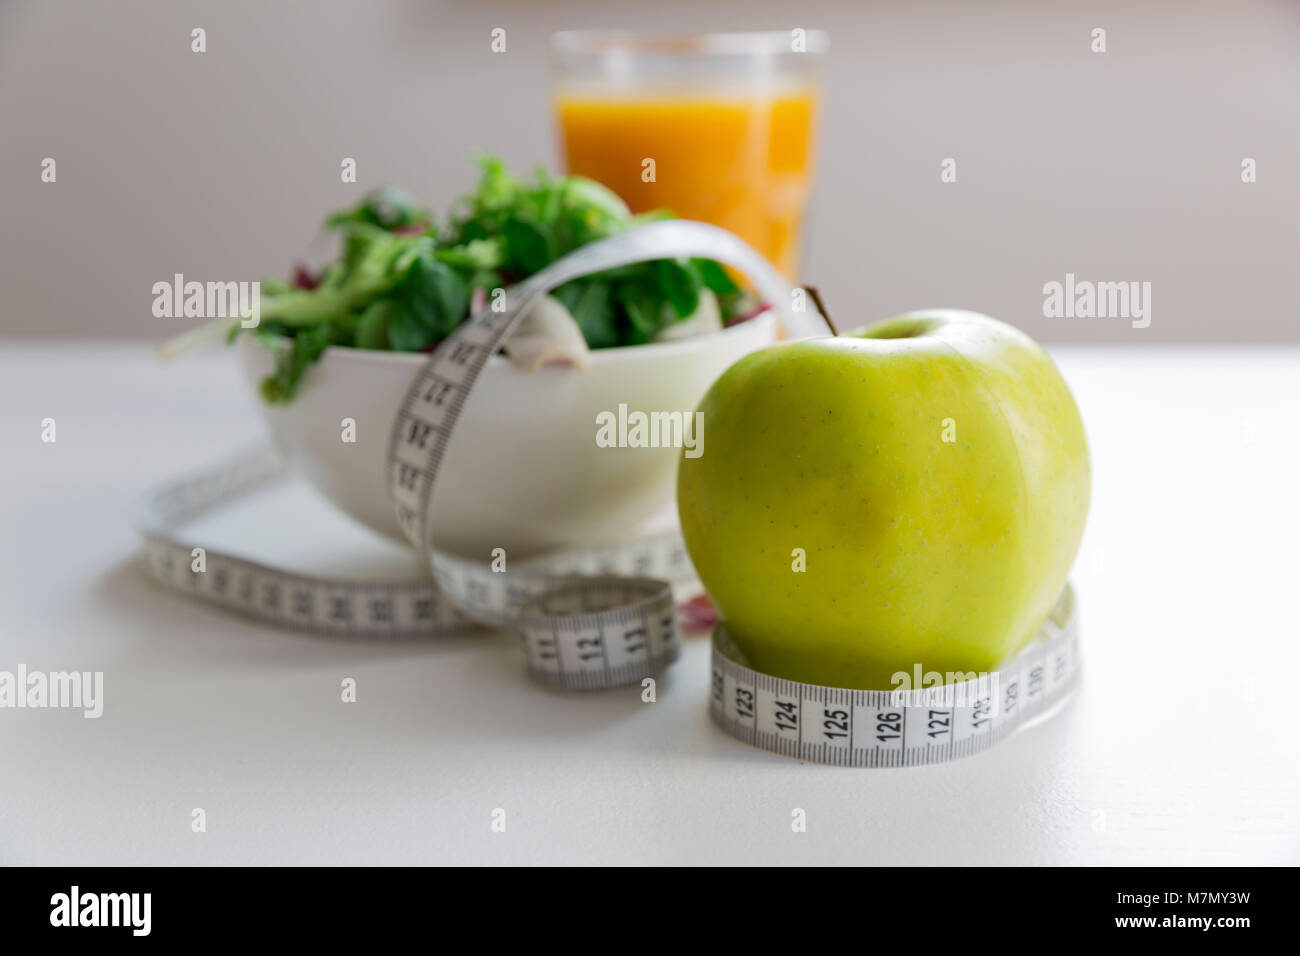 Measuring tape around the apple, bowl of green salad and glass of juice. Weight loss and right nutrition concept - Stock Image